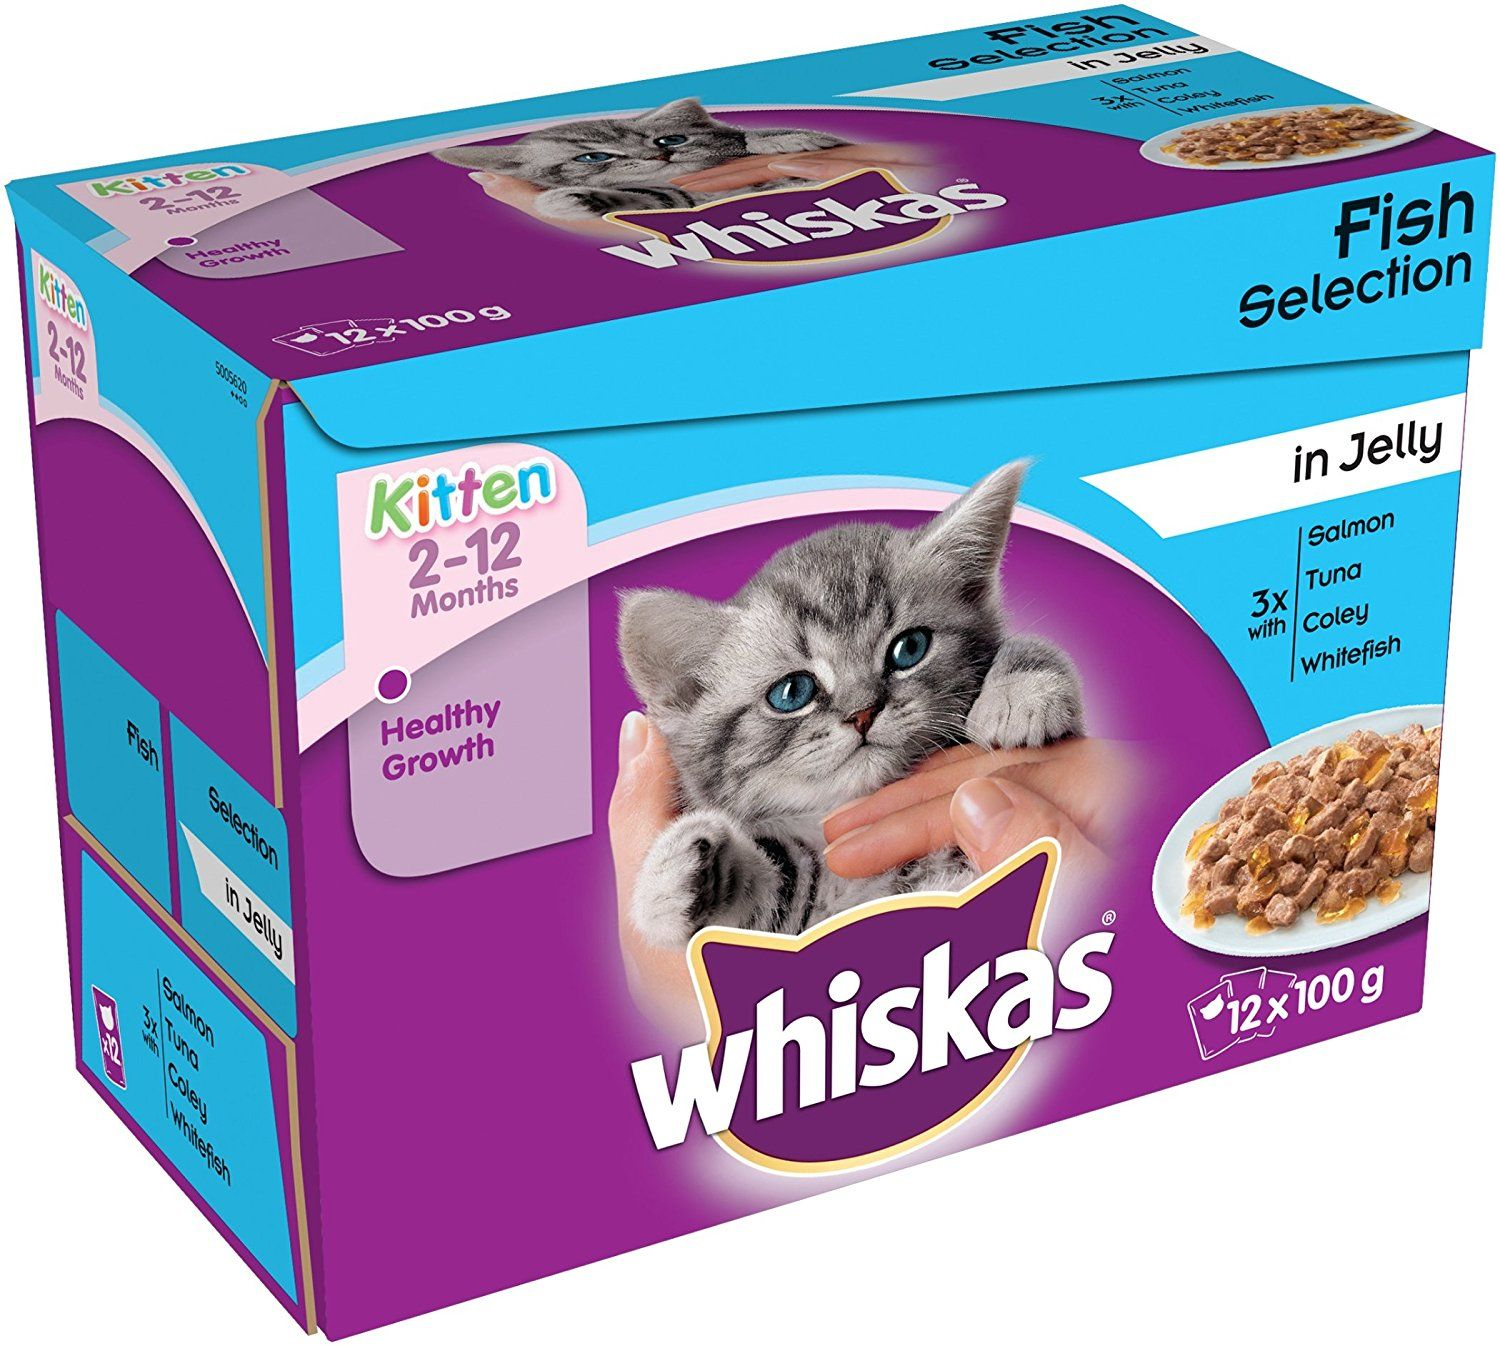 Whiskas Pouch Kitten Fish Selection In Jelly 12x100g Pack Of 4 Click Image To Read More Details Catfood